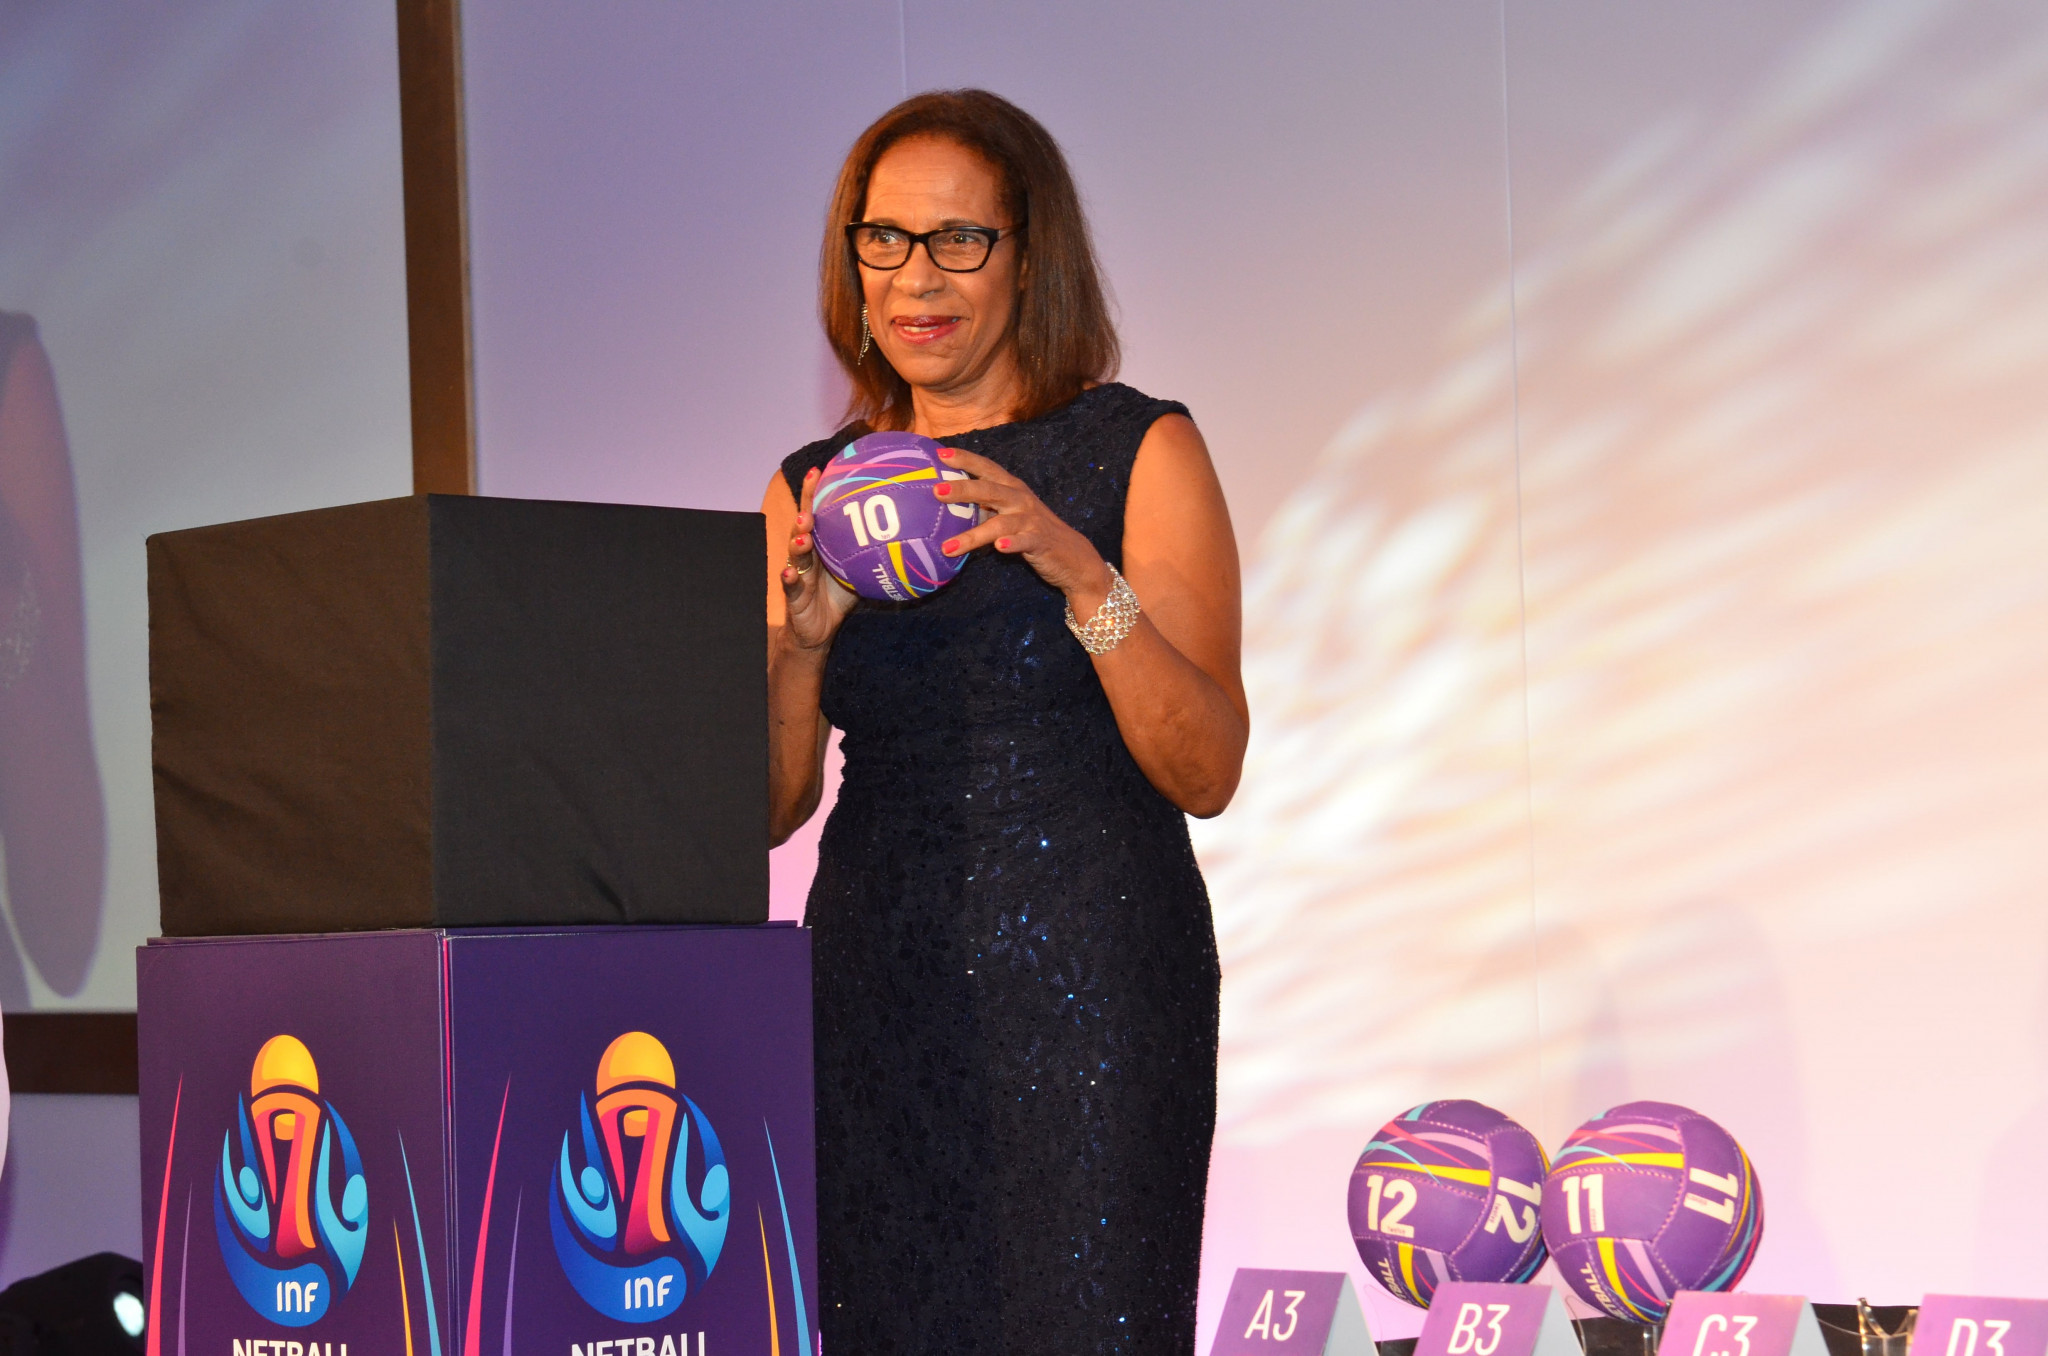 Tickets for next year's Netball World Cup have gone on sale ©INF